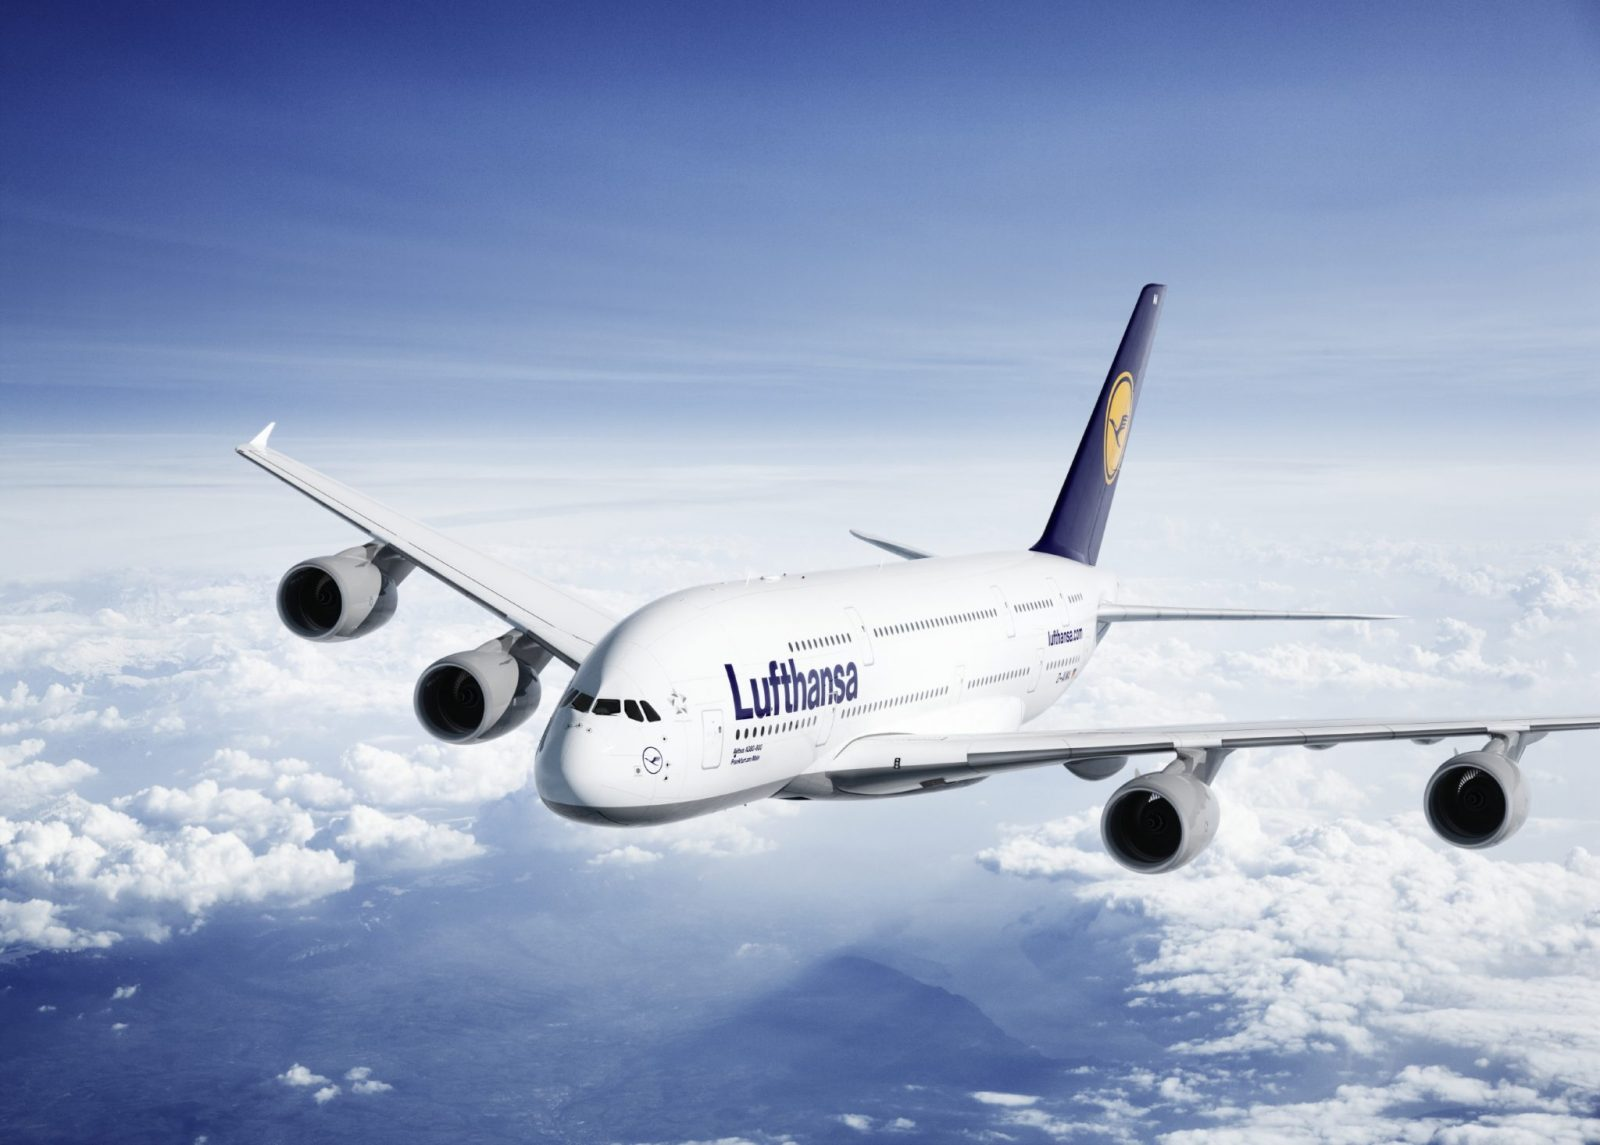 What is a codeshare flight? Lufthansa A380 - Lufthansa and Etihad announce new codeshare flights